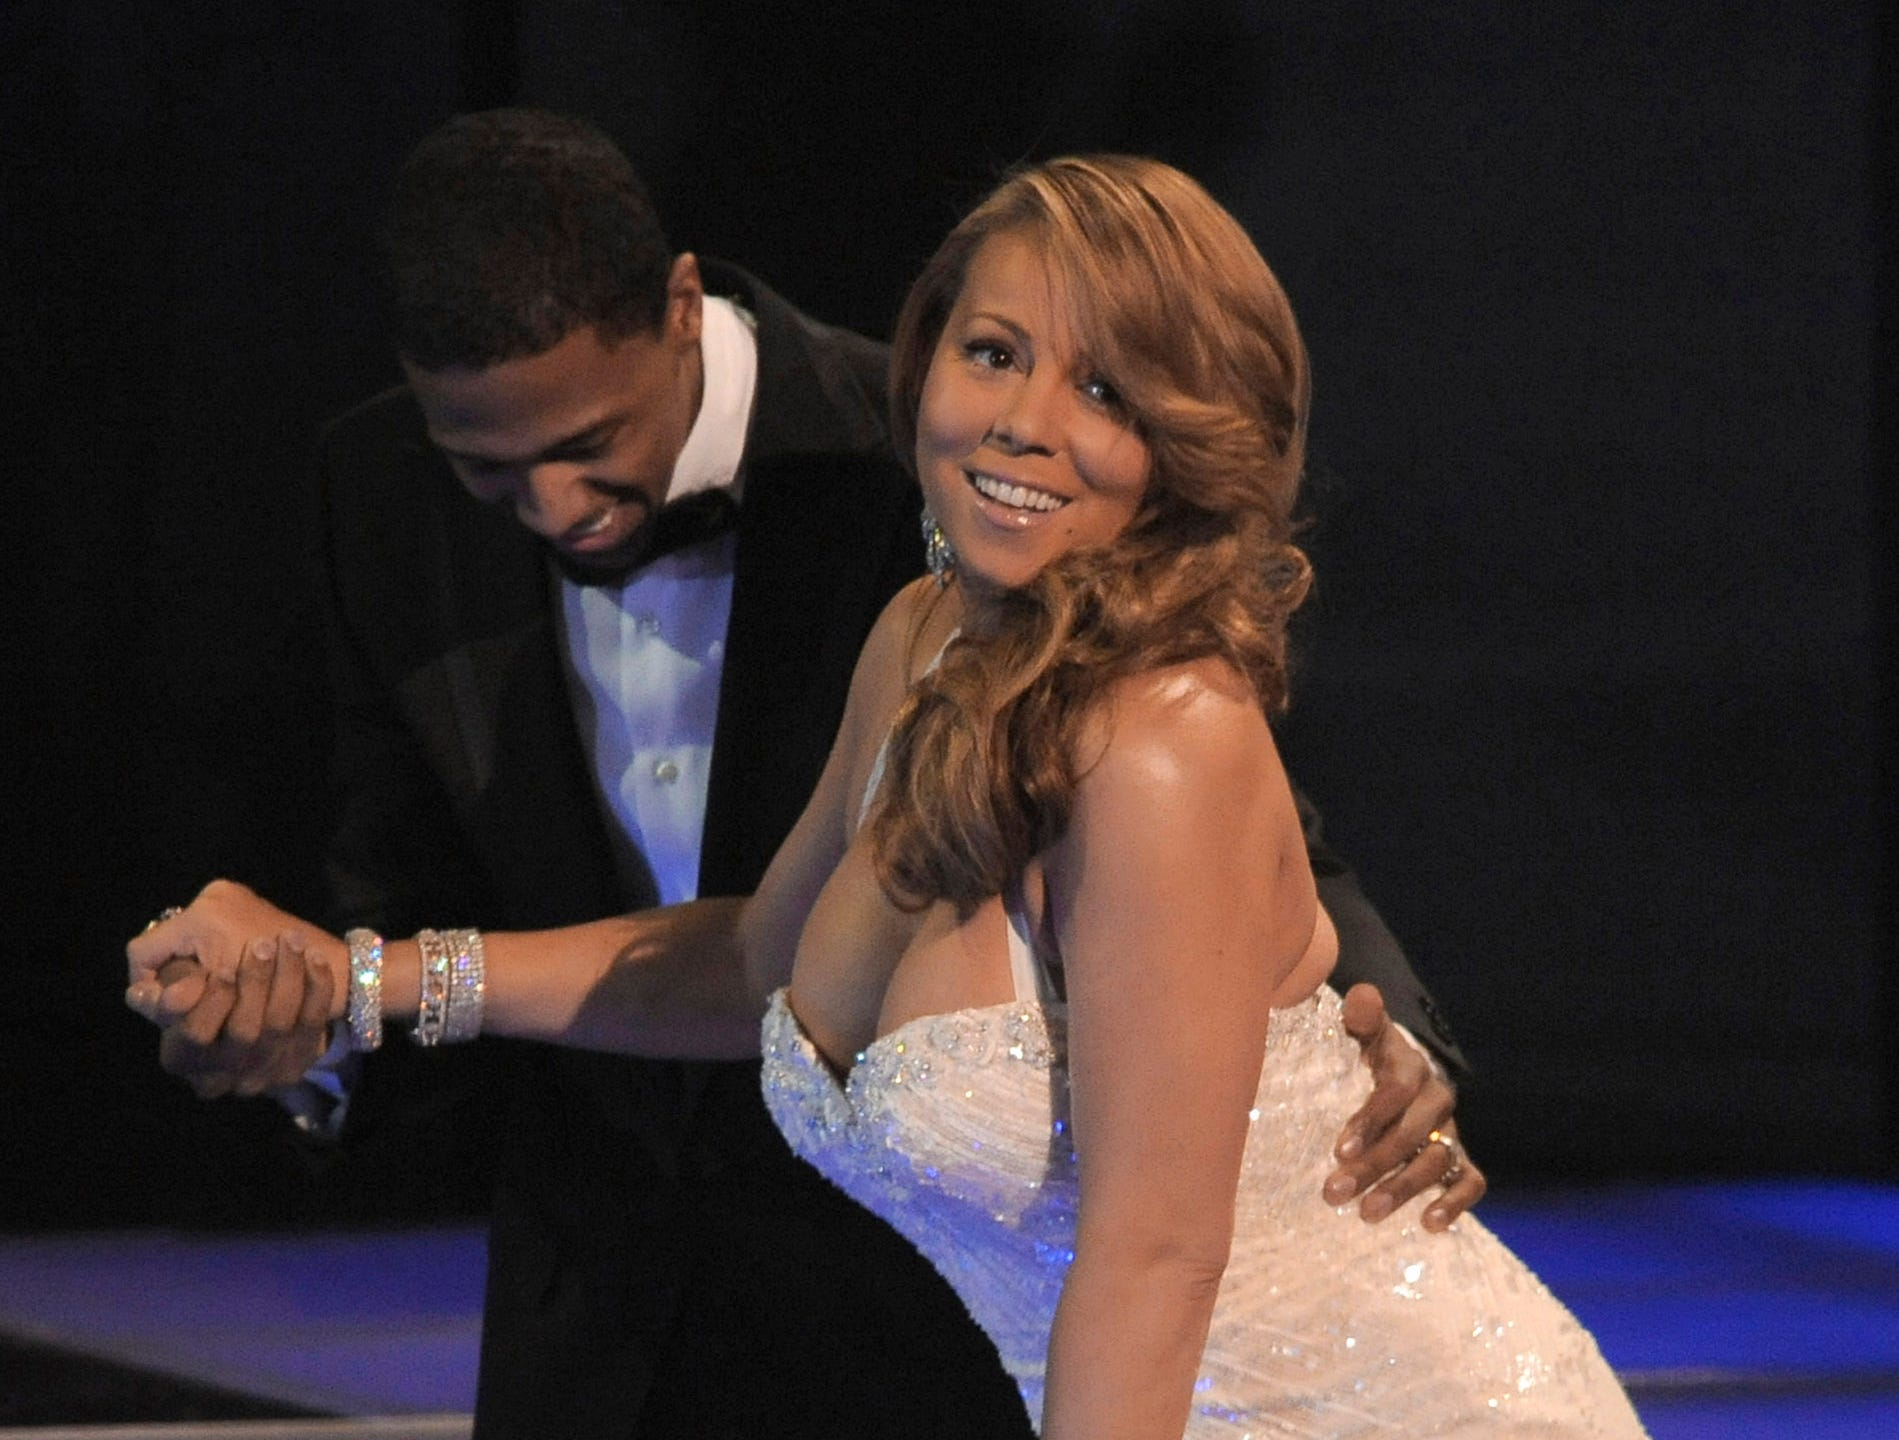 Nick Cannon helps Mariah Carey go on stage to accepts the award for best R&B artist at the People's Choice Awards on Wednesday Jan. 6, 2010, in Los Angeles. (AP Photo/Chris Pizzello) ORG XMIT: CADC138